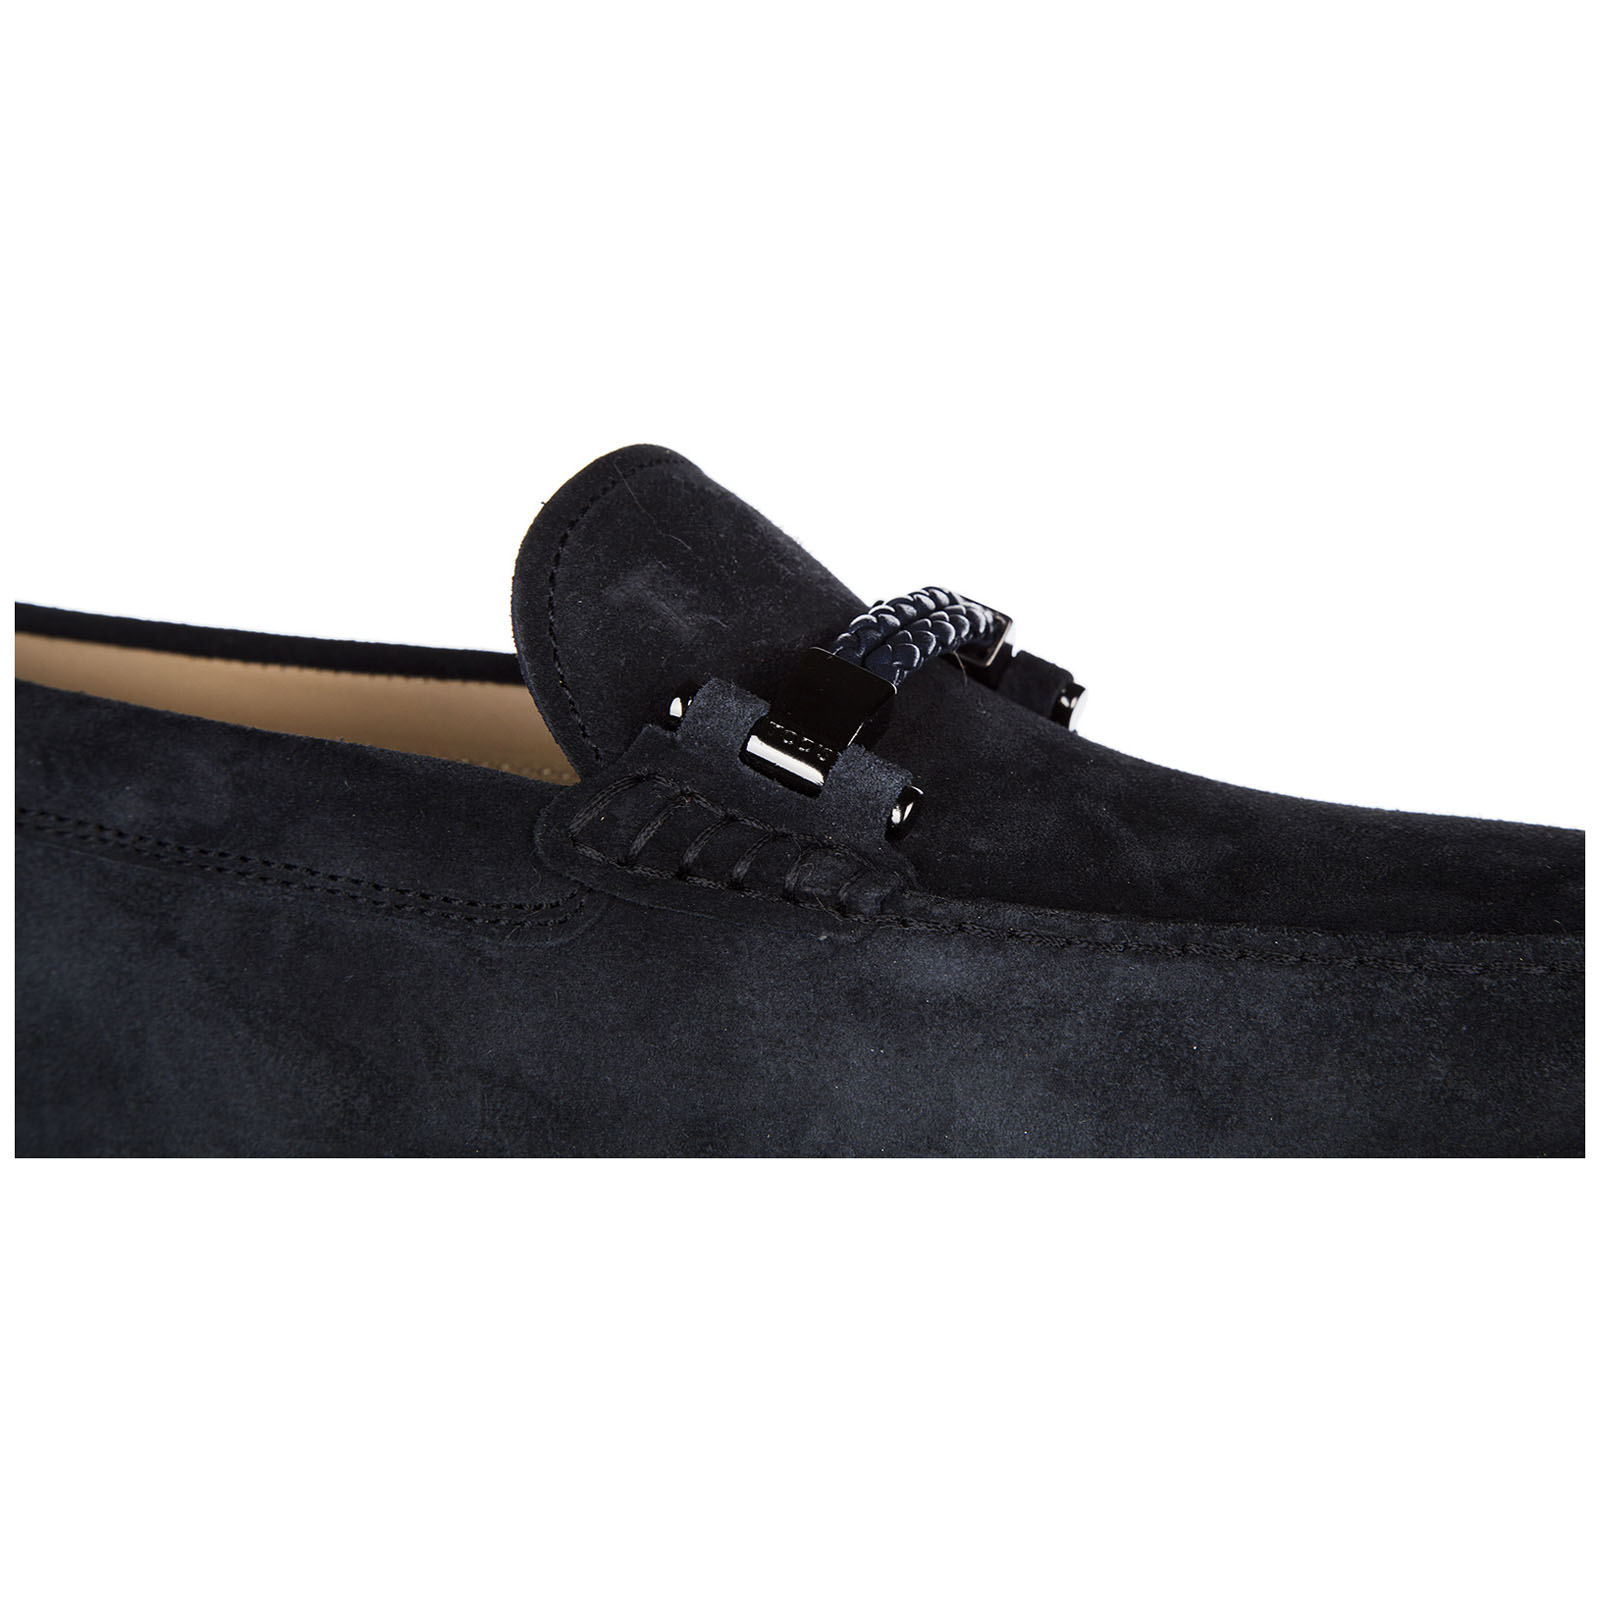 Men's suede loafers moccasins gemelli scooby new gommini 122